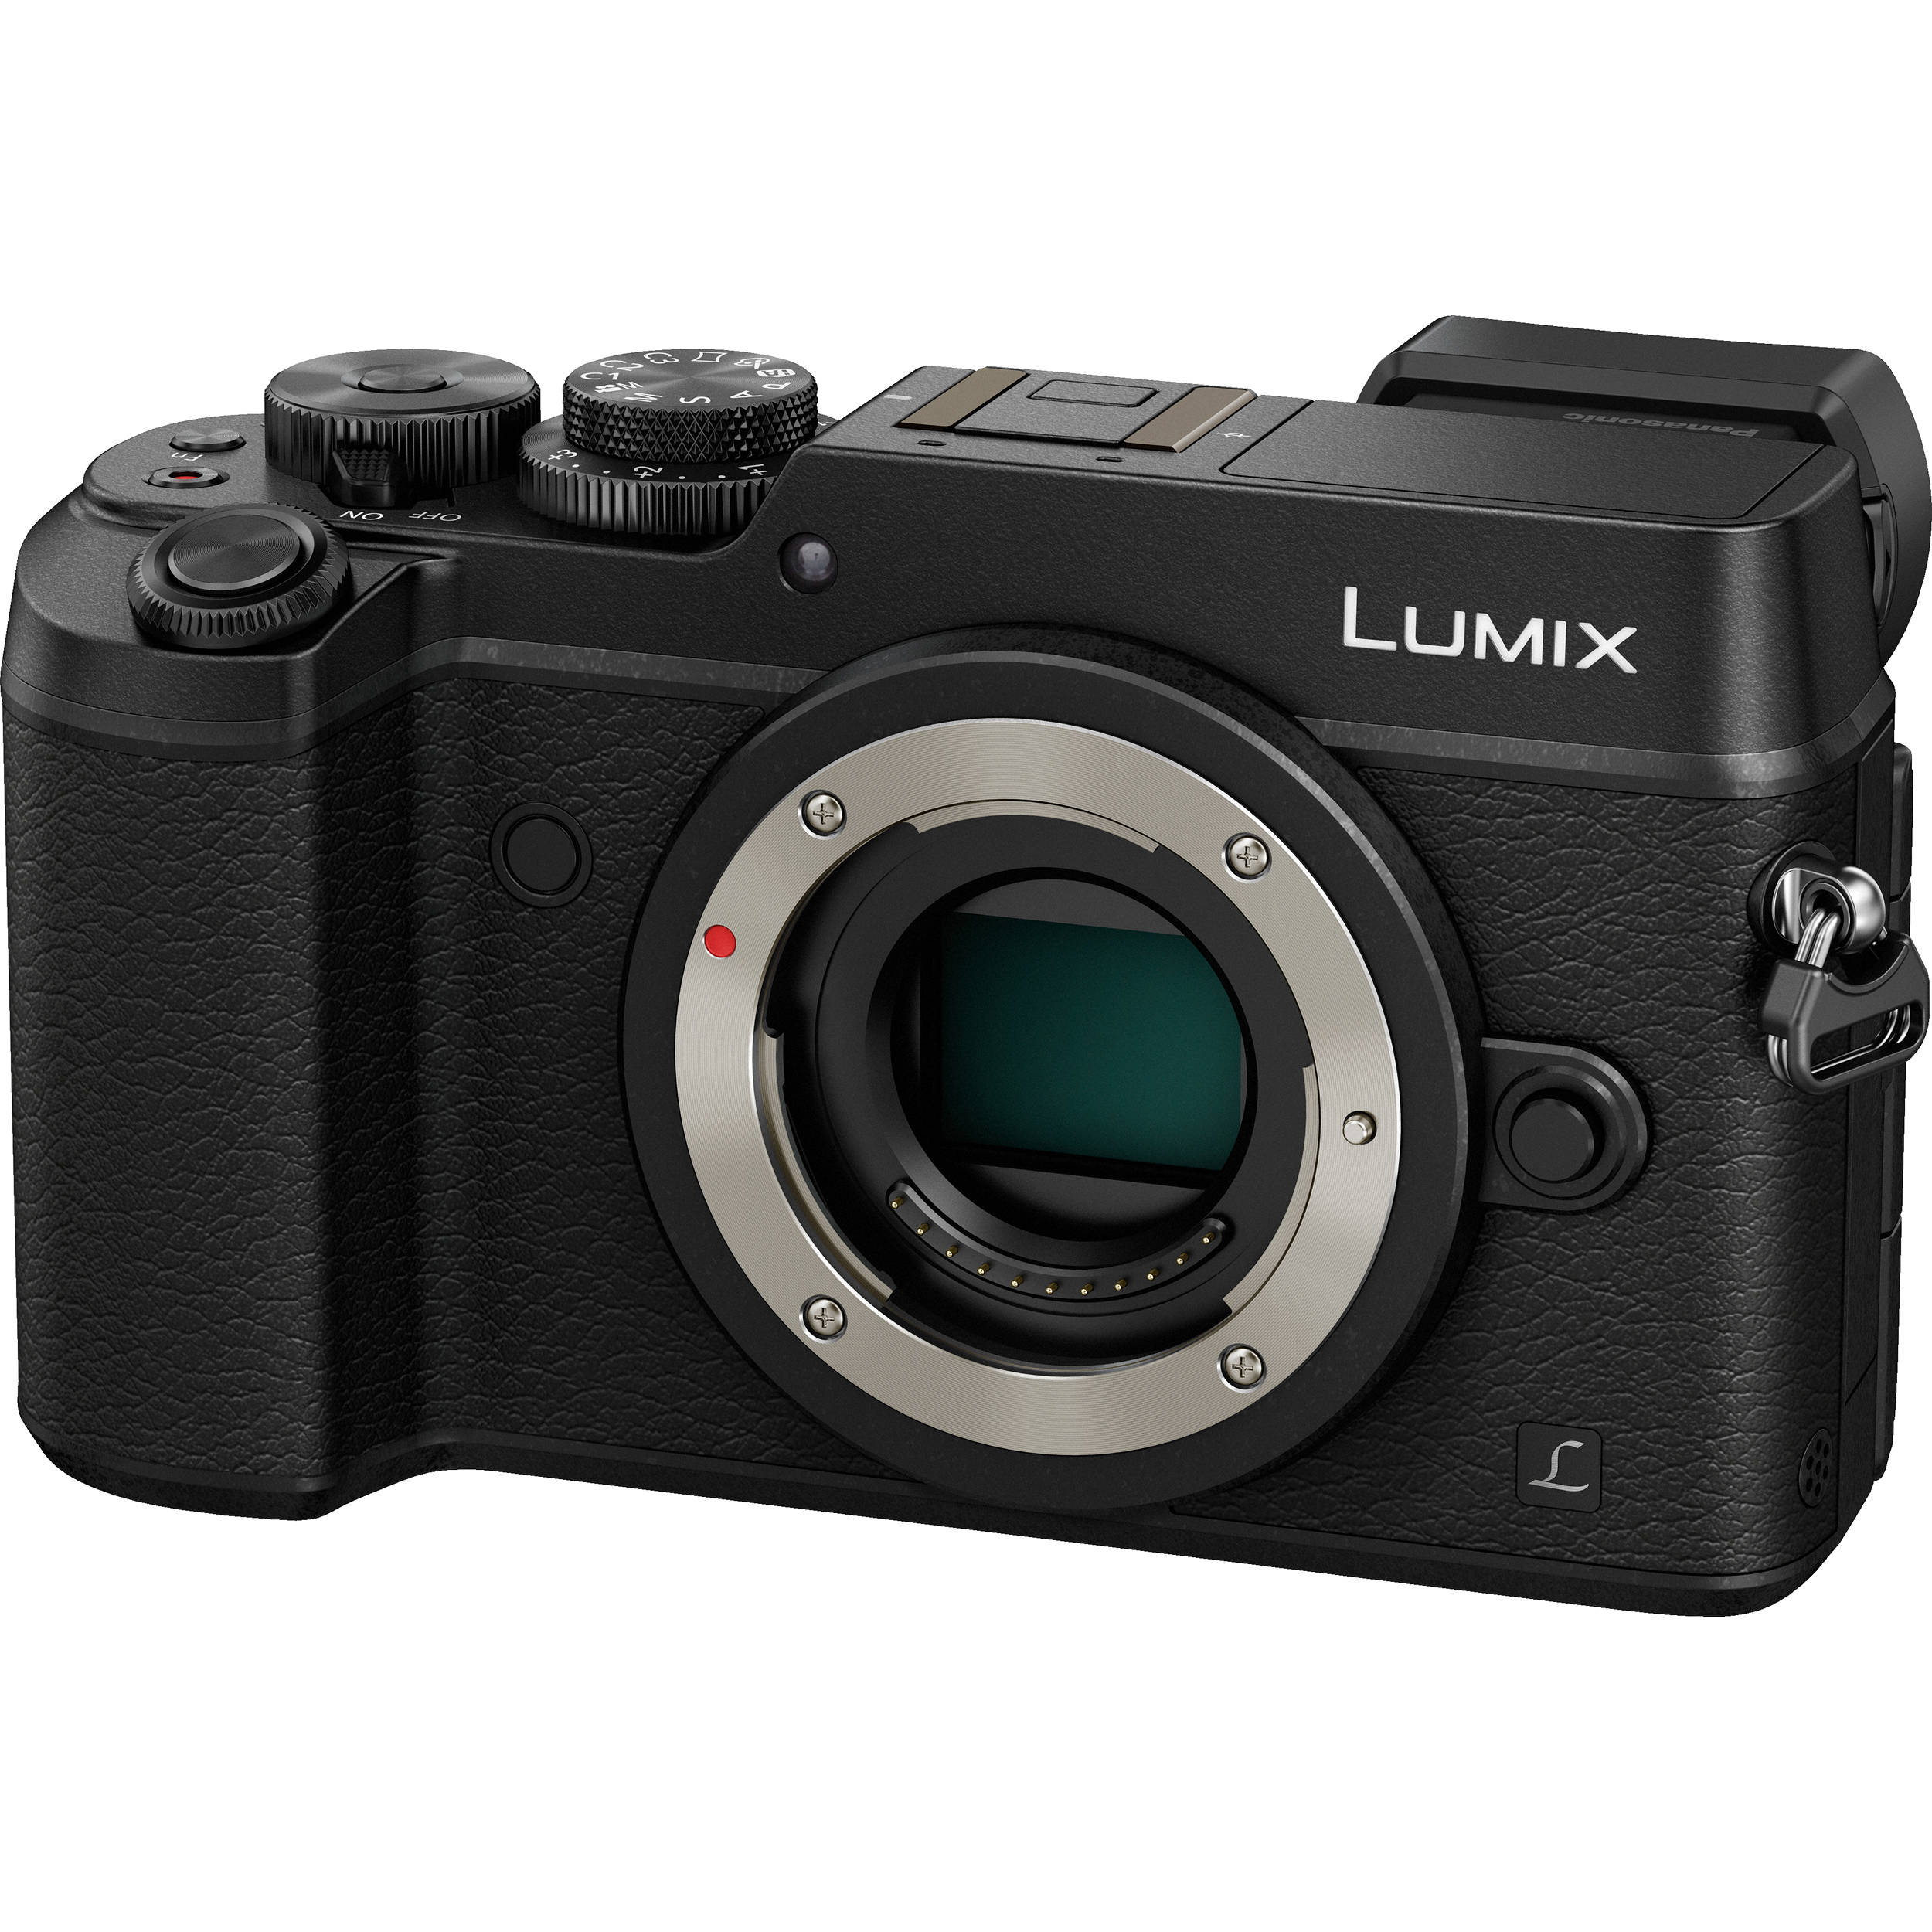 Panasonic GX8 Review for Underwater Photography